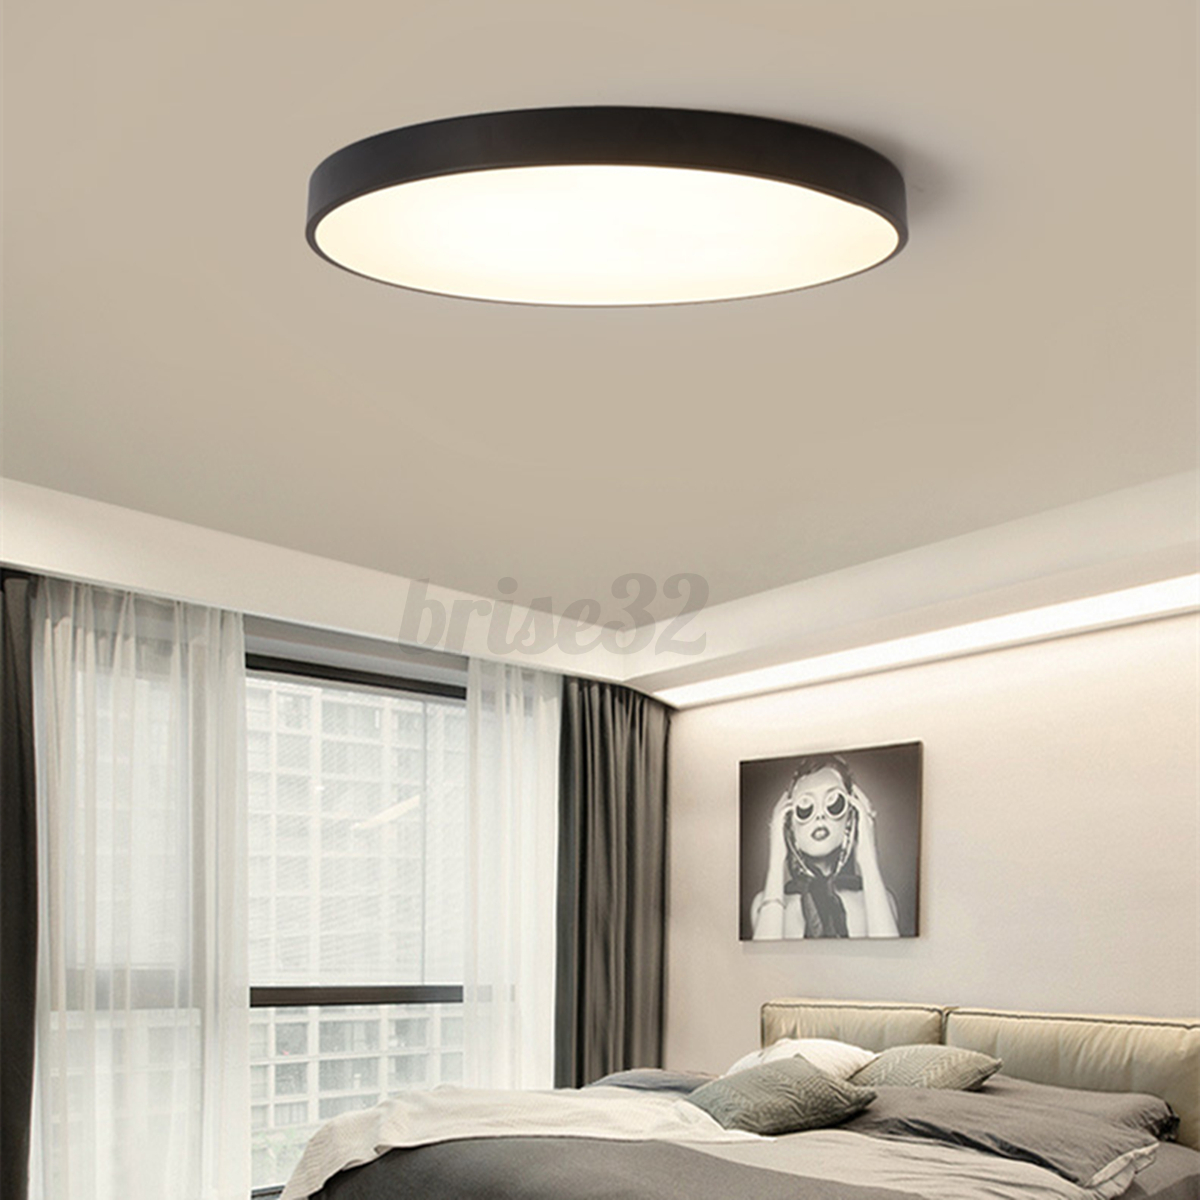 Ceiling Bedroom Lights: Round LED Ceiling Down Light Fixture Home Bedroom Living